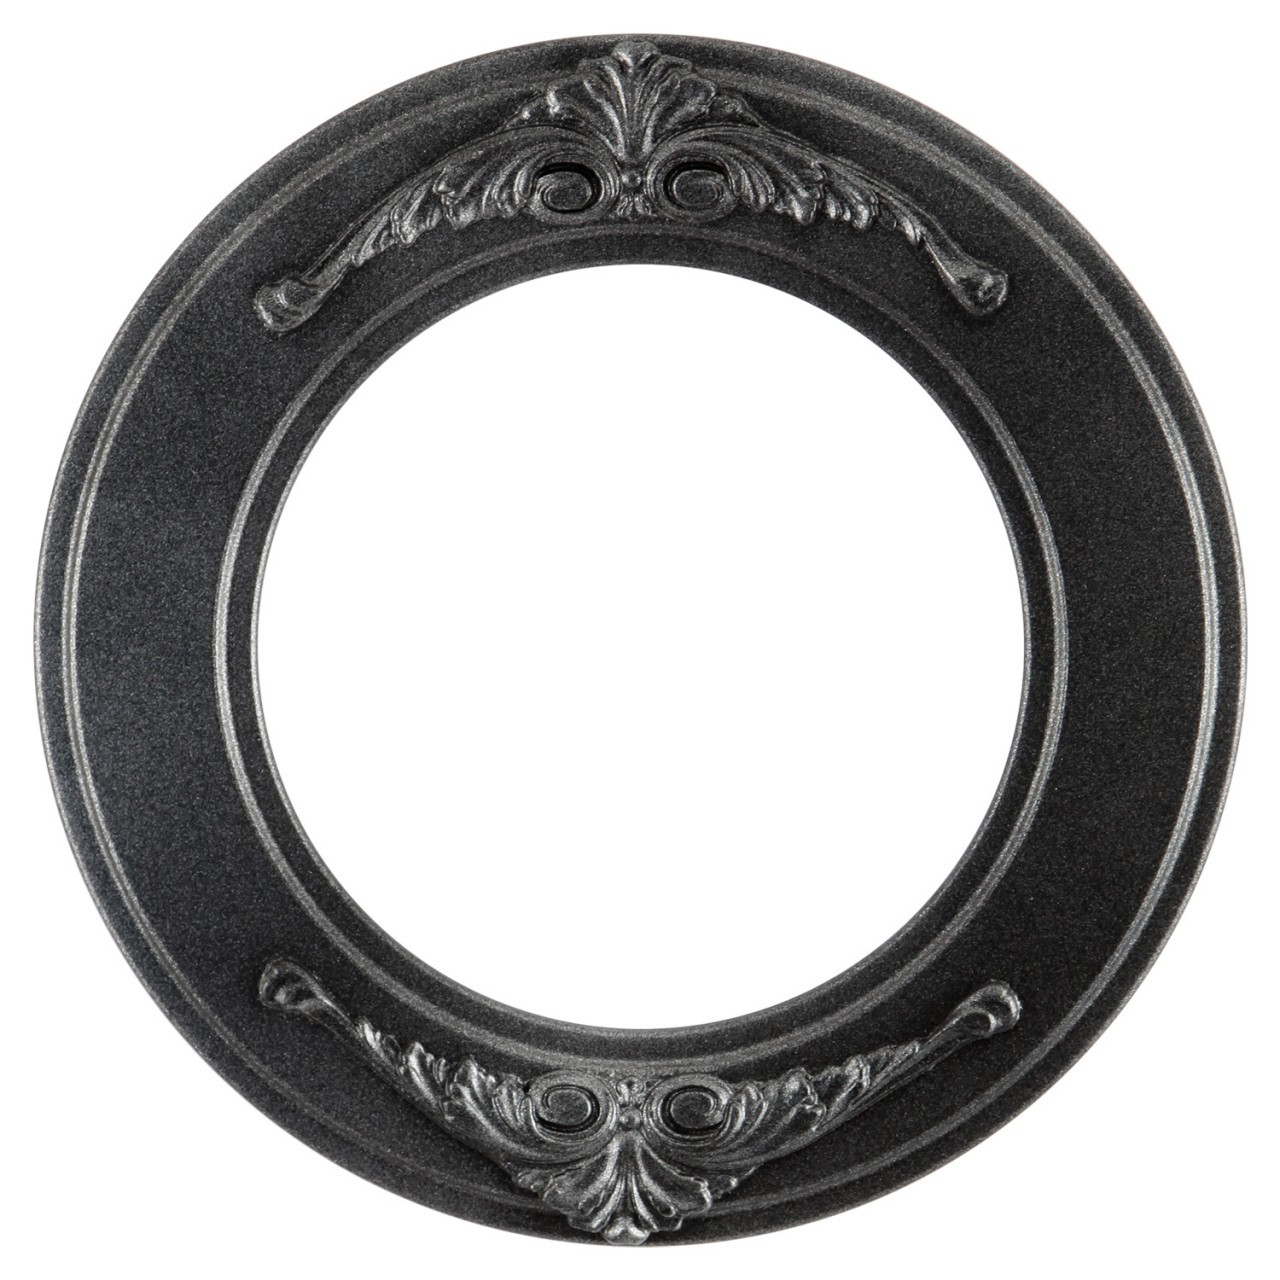 Round Frame in Black Silver Finish| Ornate Decals on Flat Profile ...